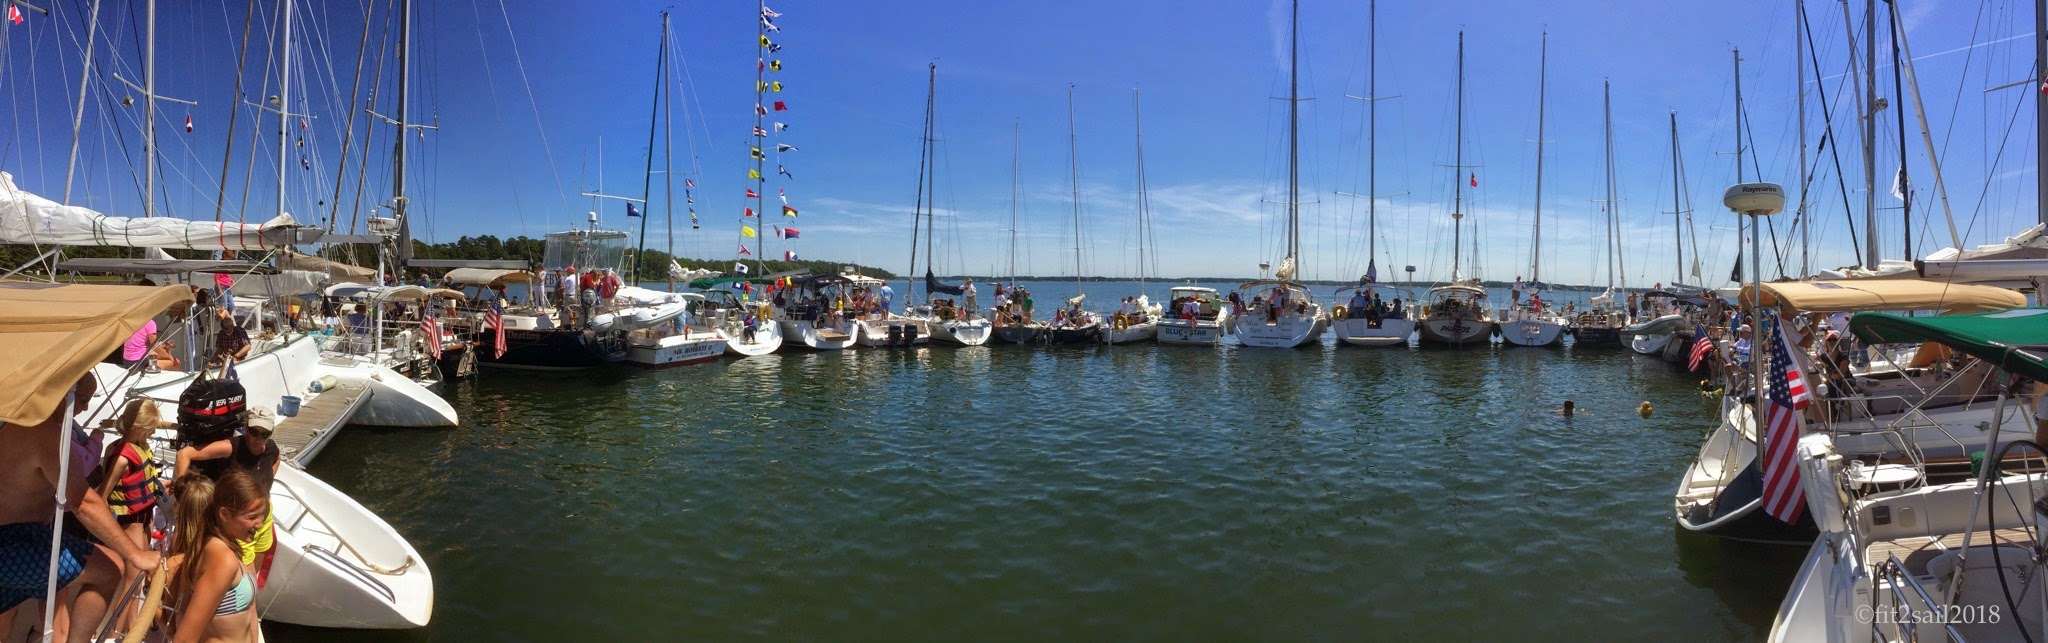 So many kinds of boats!